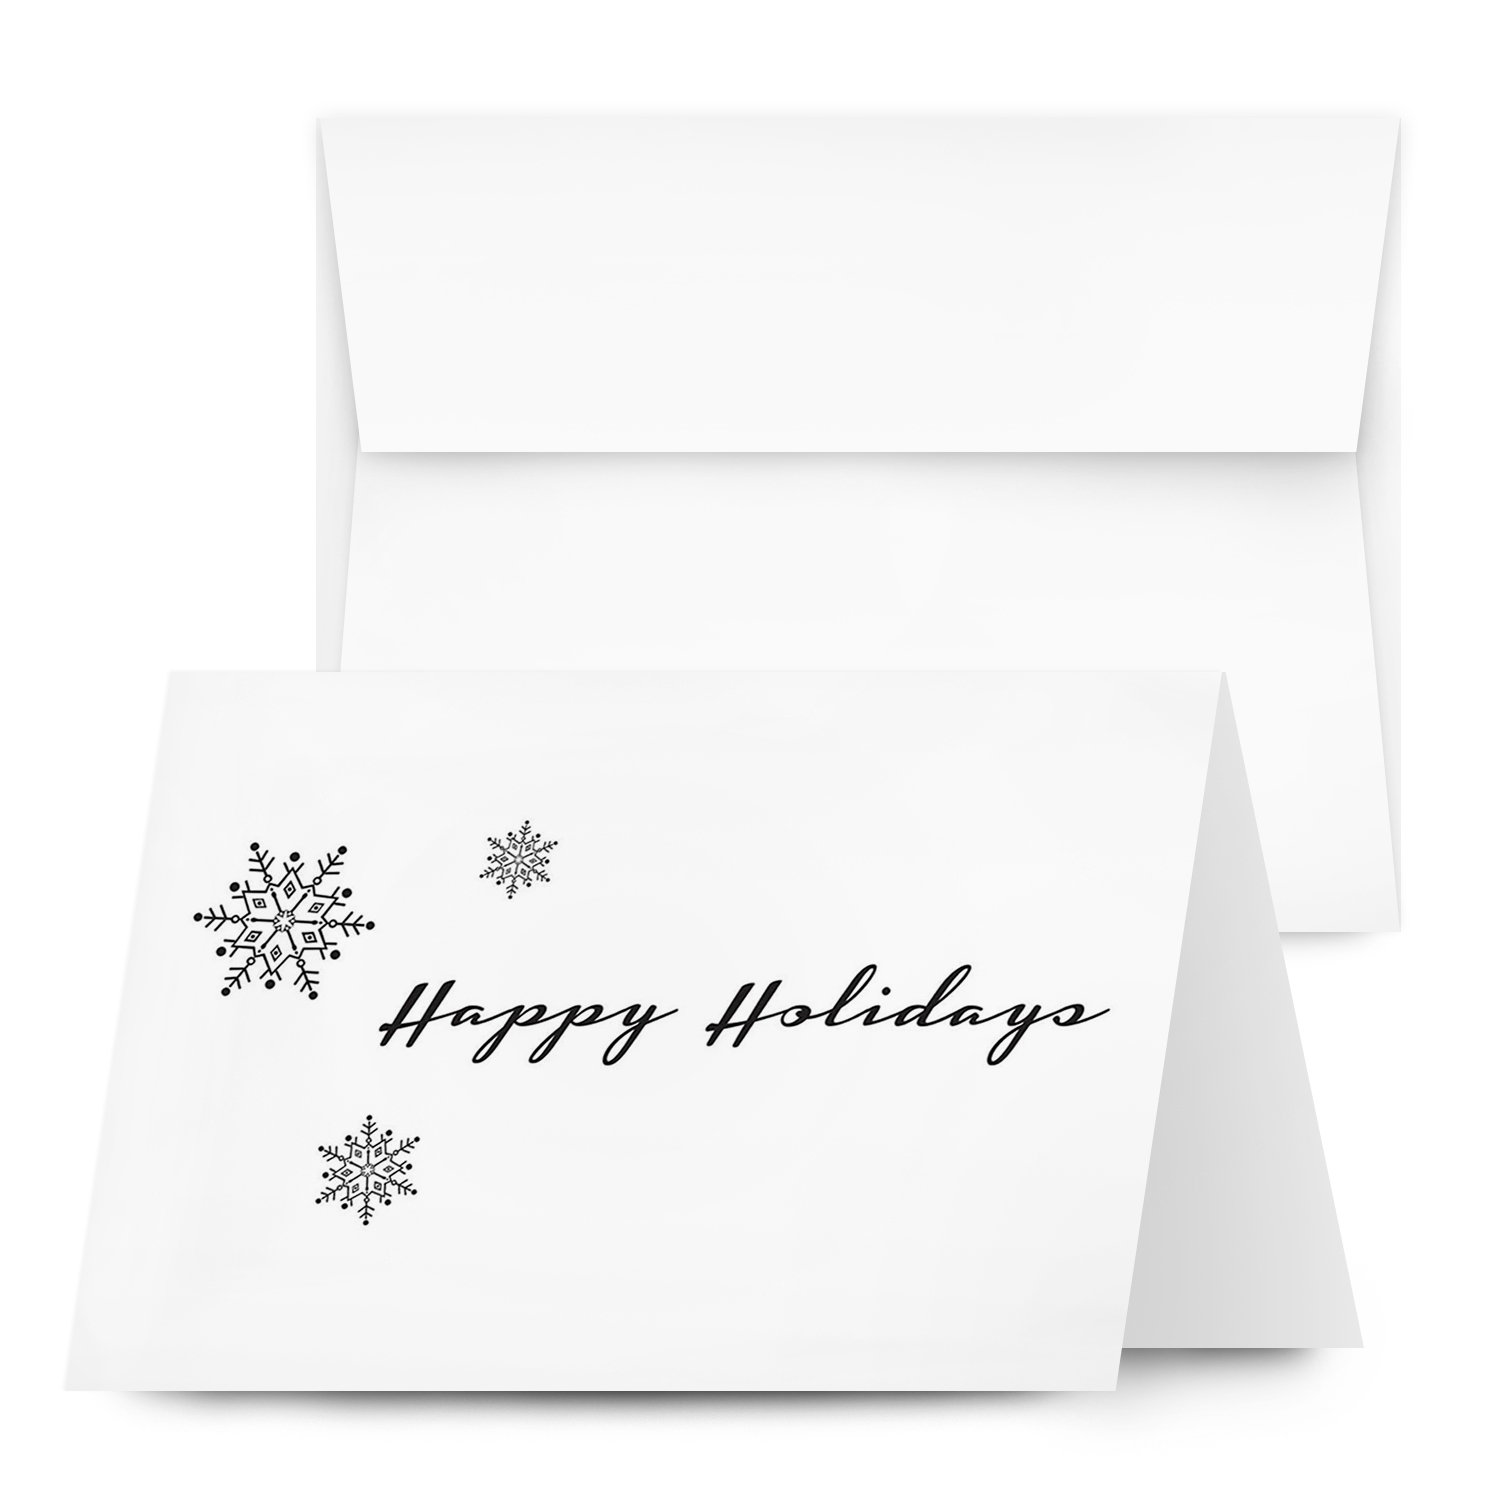 5″ X 7″ Holiday Folding Cards with Envelopes